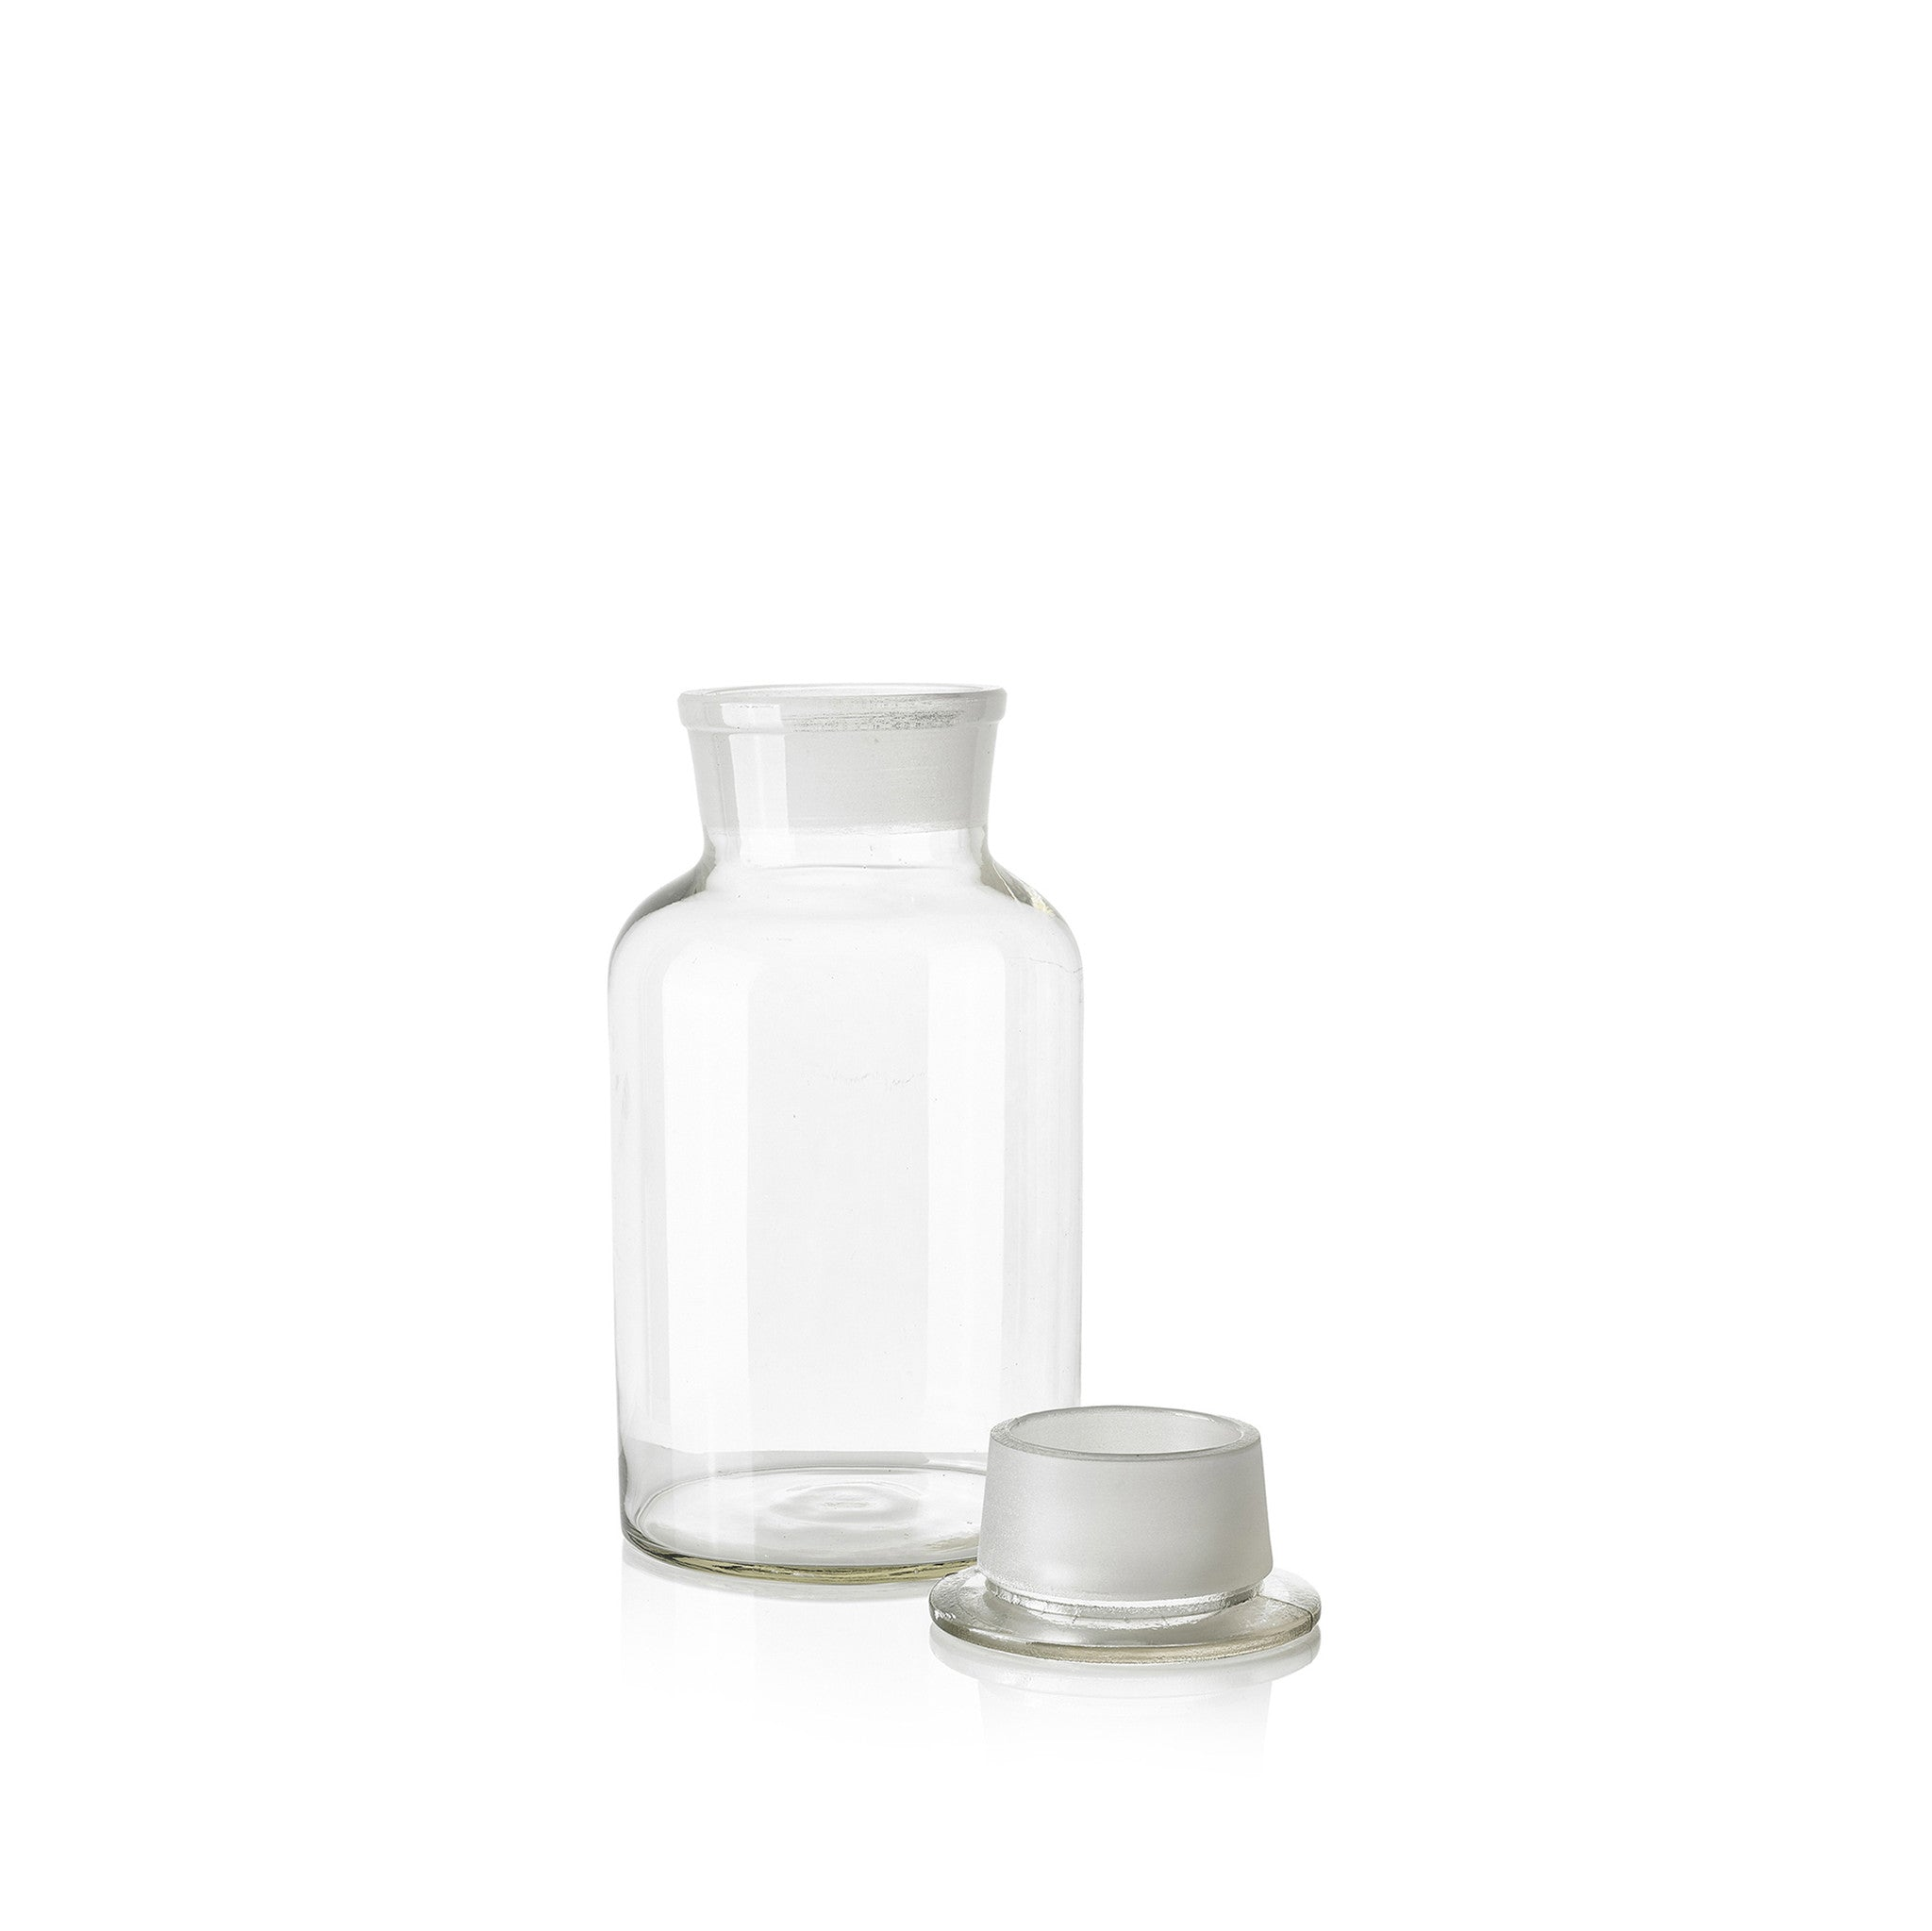 Apothecary Jar with Lid, 29cm